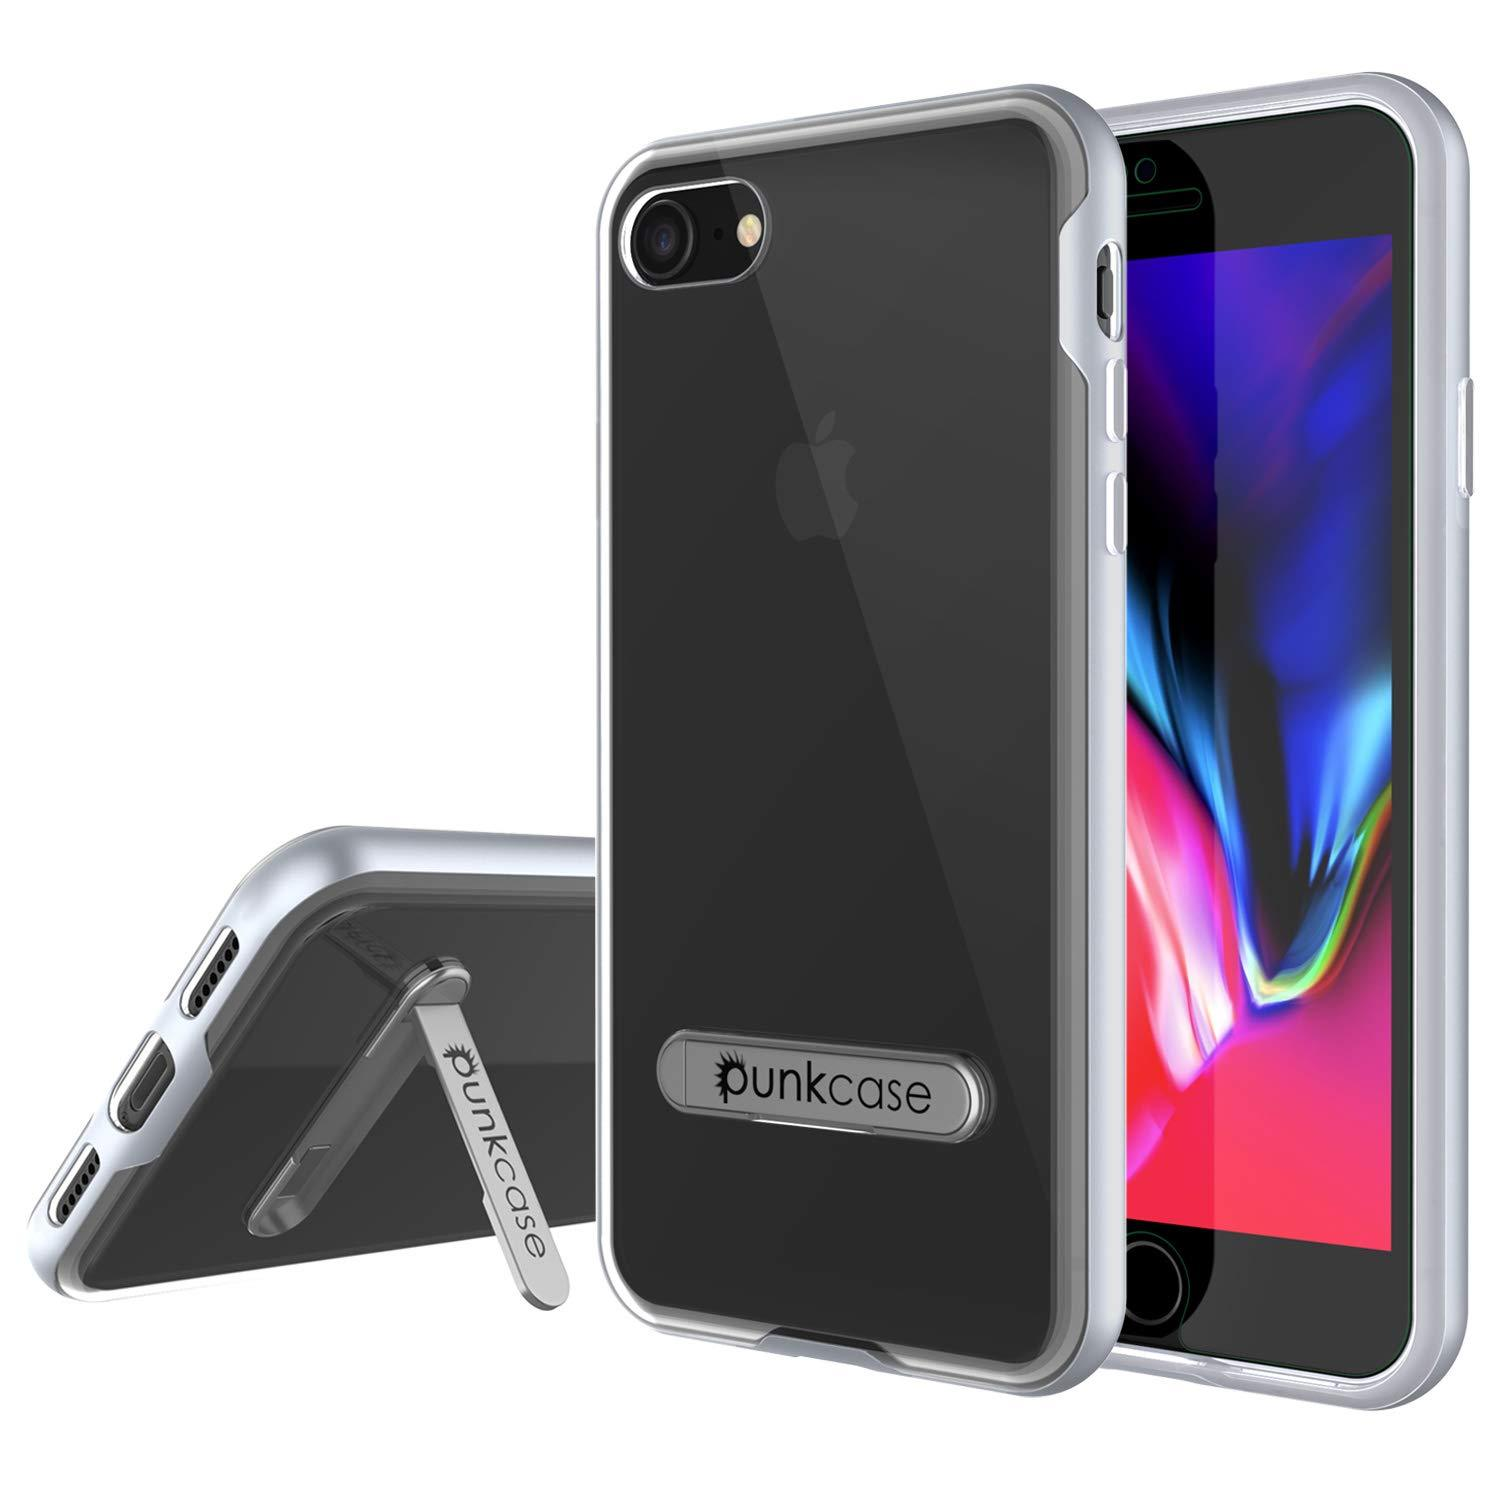 "PunkCase iPhone SE (4.7"") Lucid 3.0 Screen Protector W/ Anti-Shock Case [Silver]"